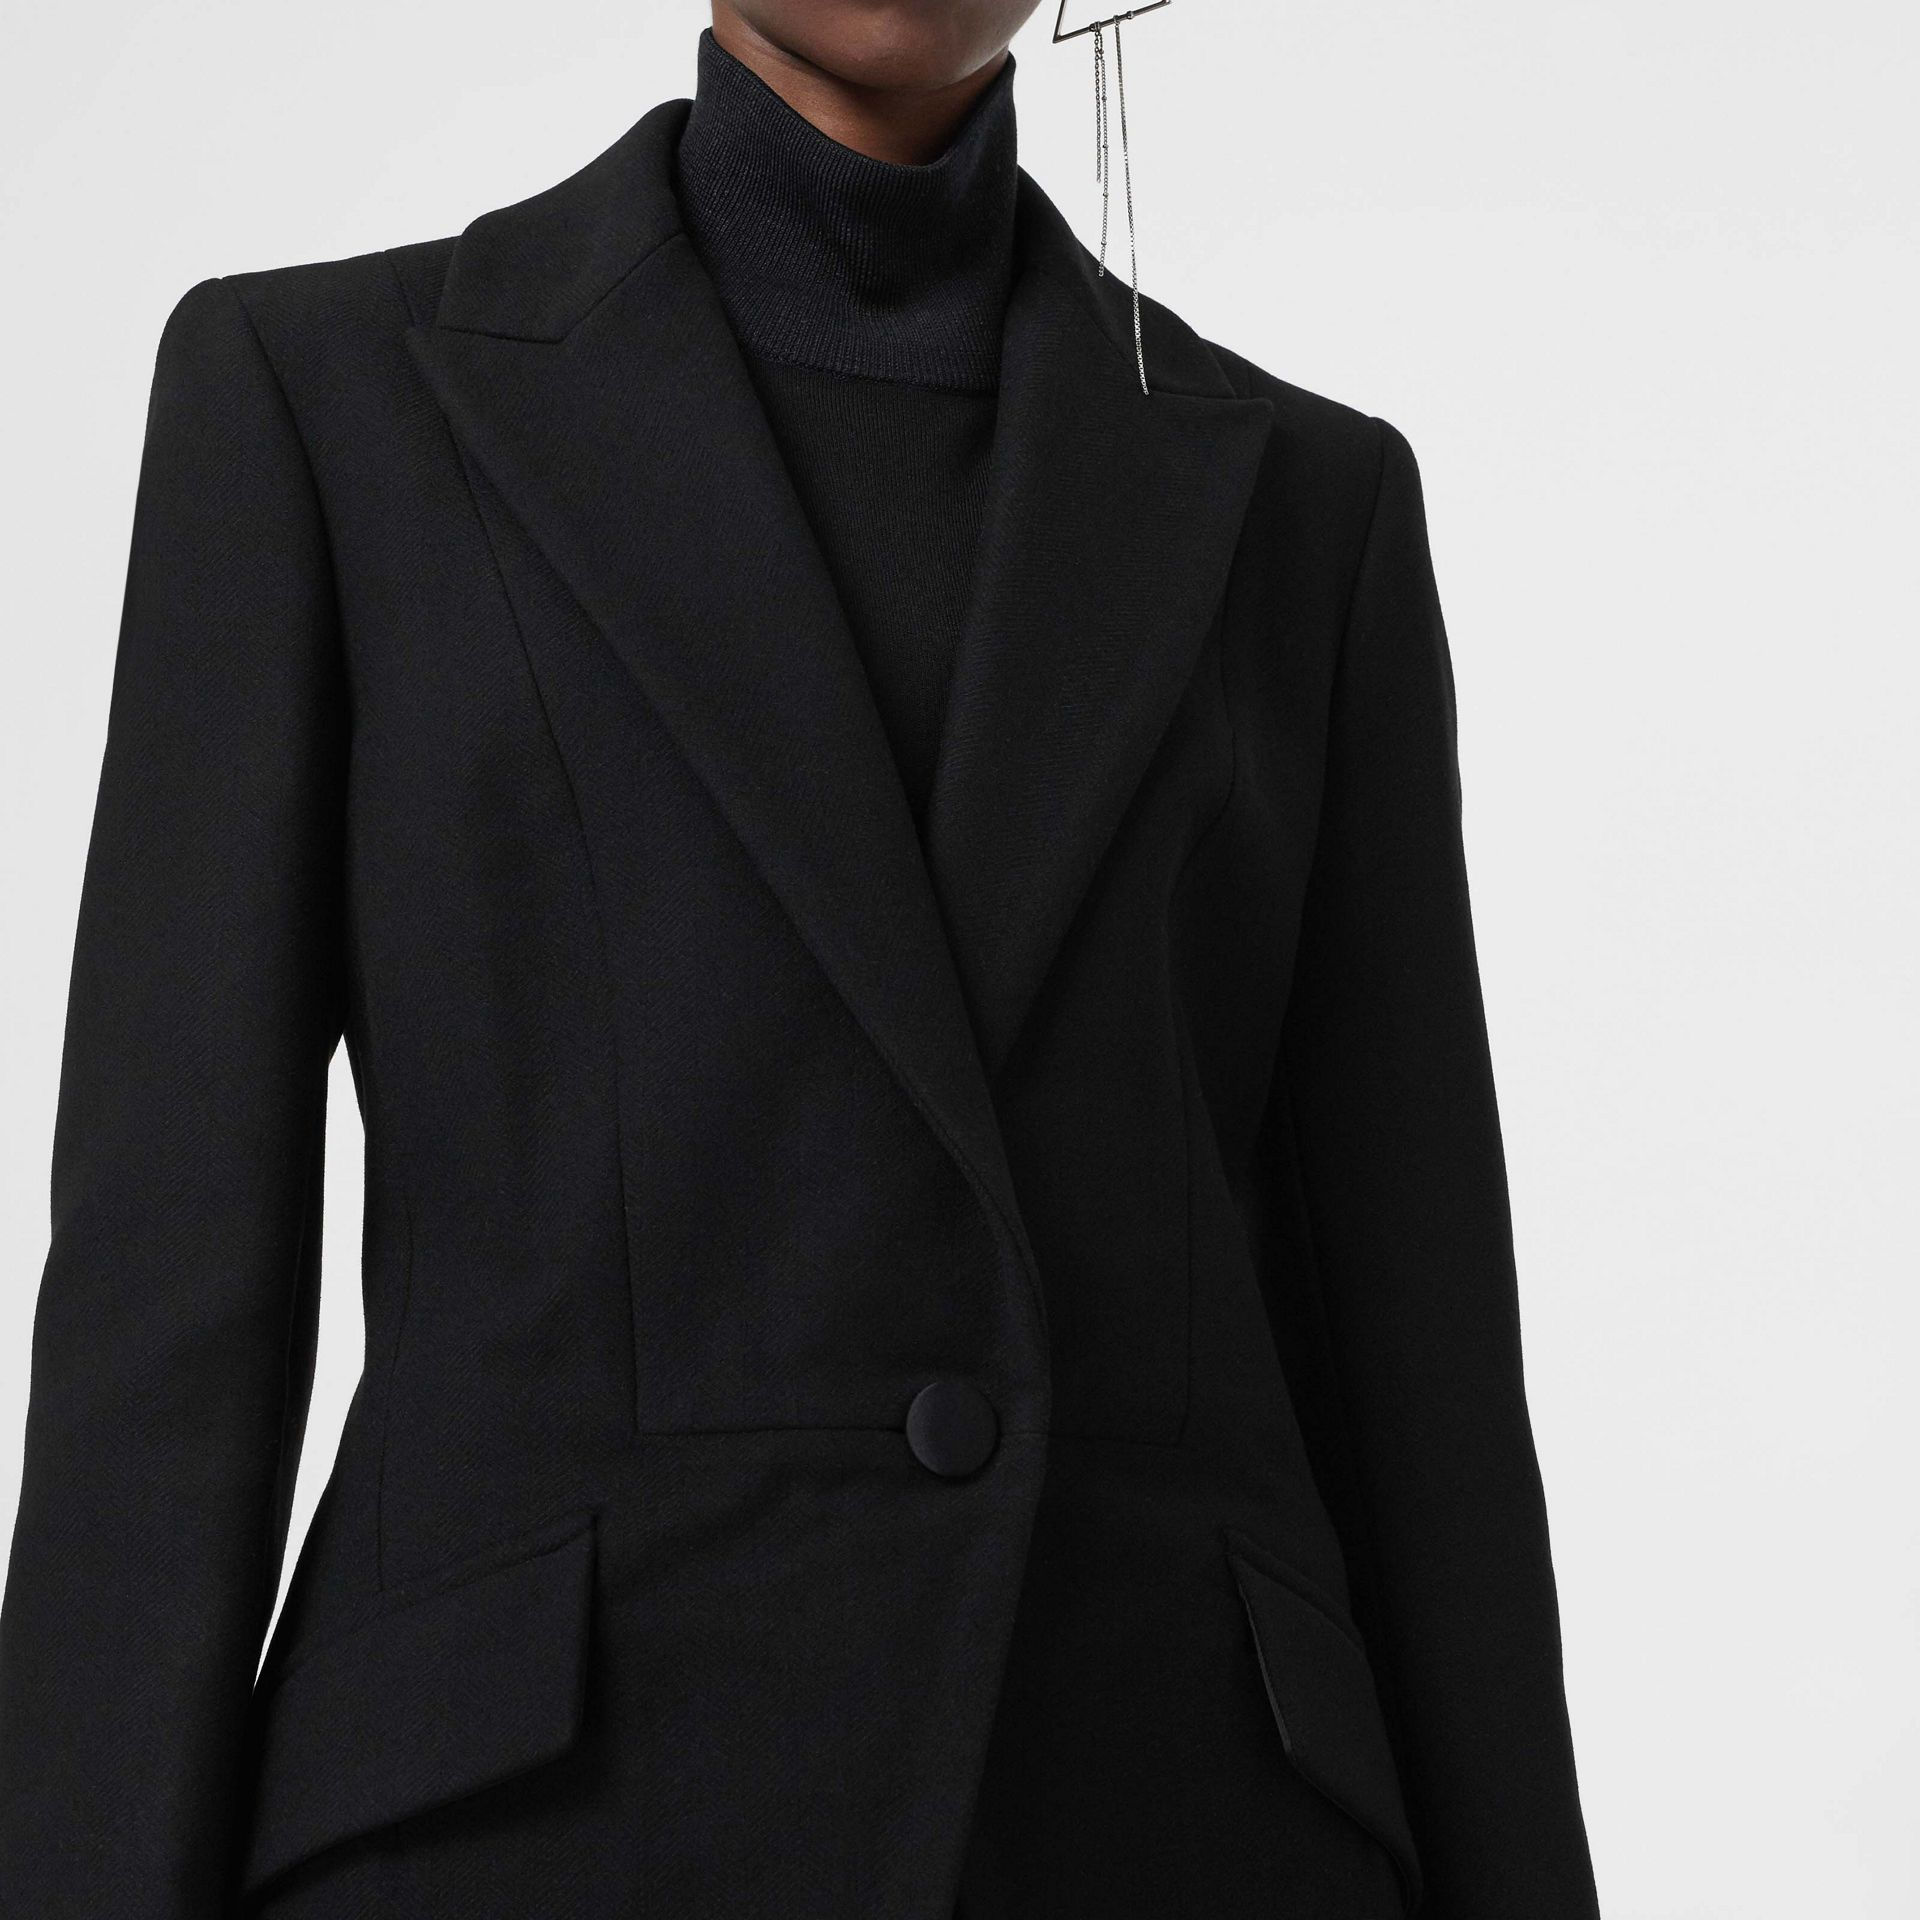 Herringbone Wool Cashmere Blend Tailored Jacket in Black - Women | Burberry - gallery image 4